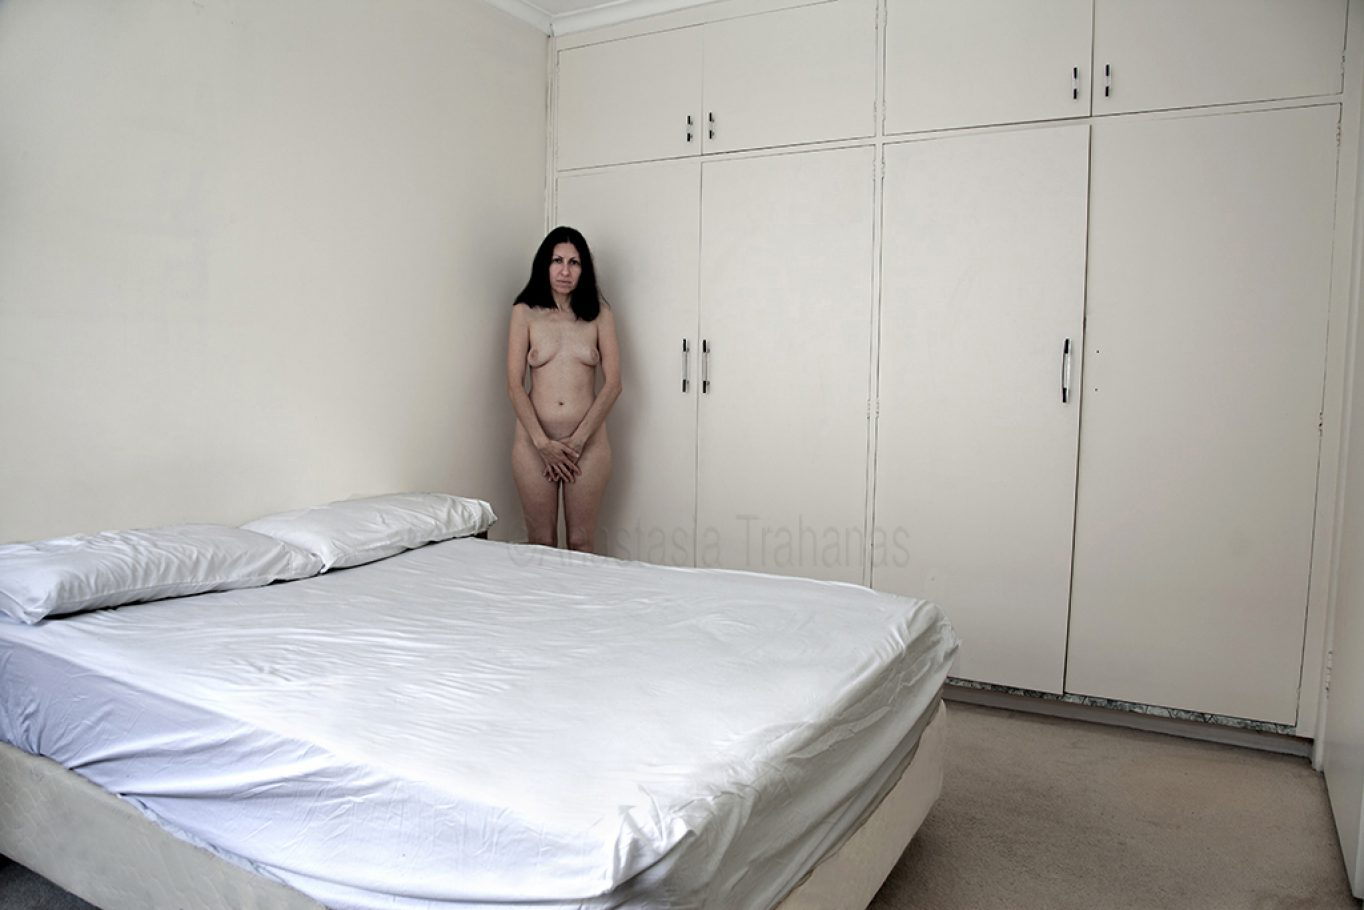 Naked in corner of bedroom